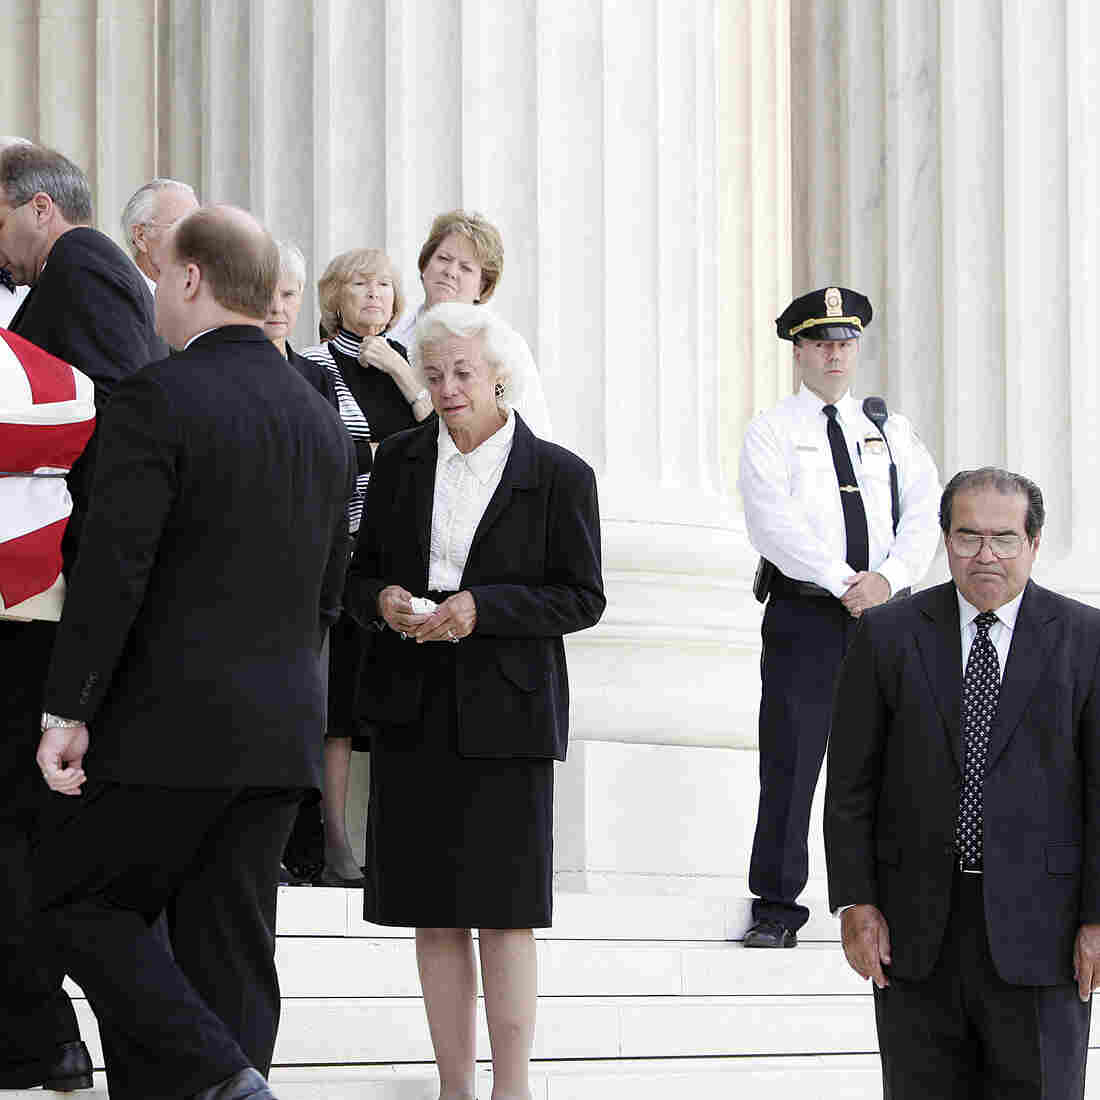 U.S. Supreme Court Associate Justices Sandra Day O'Connor, center, and Antonin Scalia, right, watch as pallbearers carry the casket of Chief Justice William Rehnquest into the Supreme Court where he will laid in repose in September 2005.